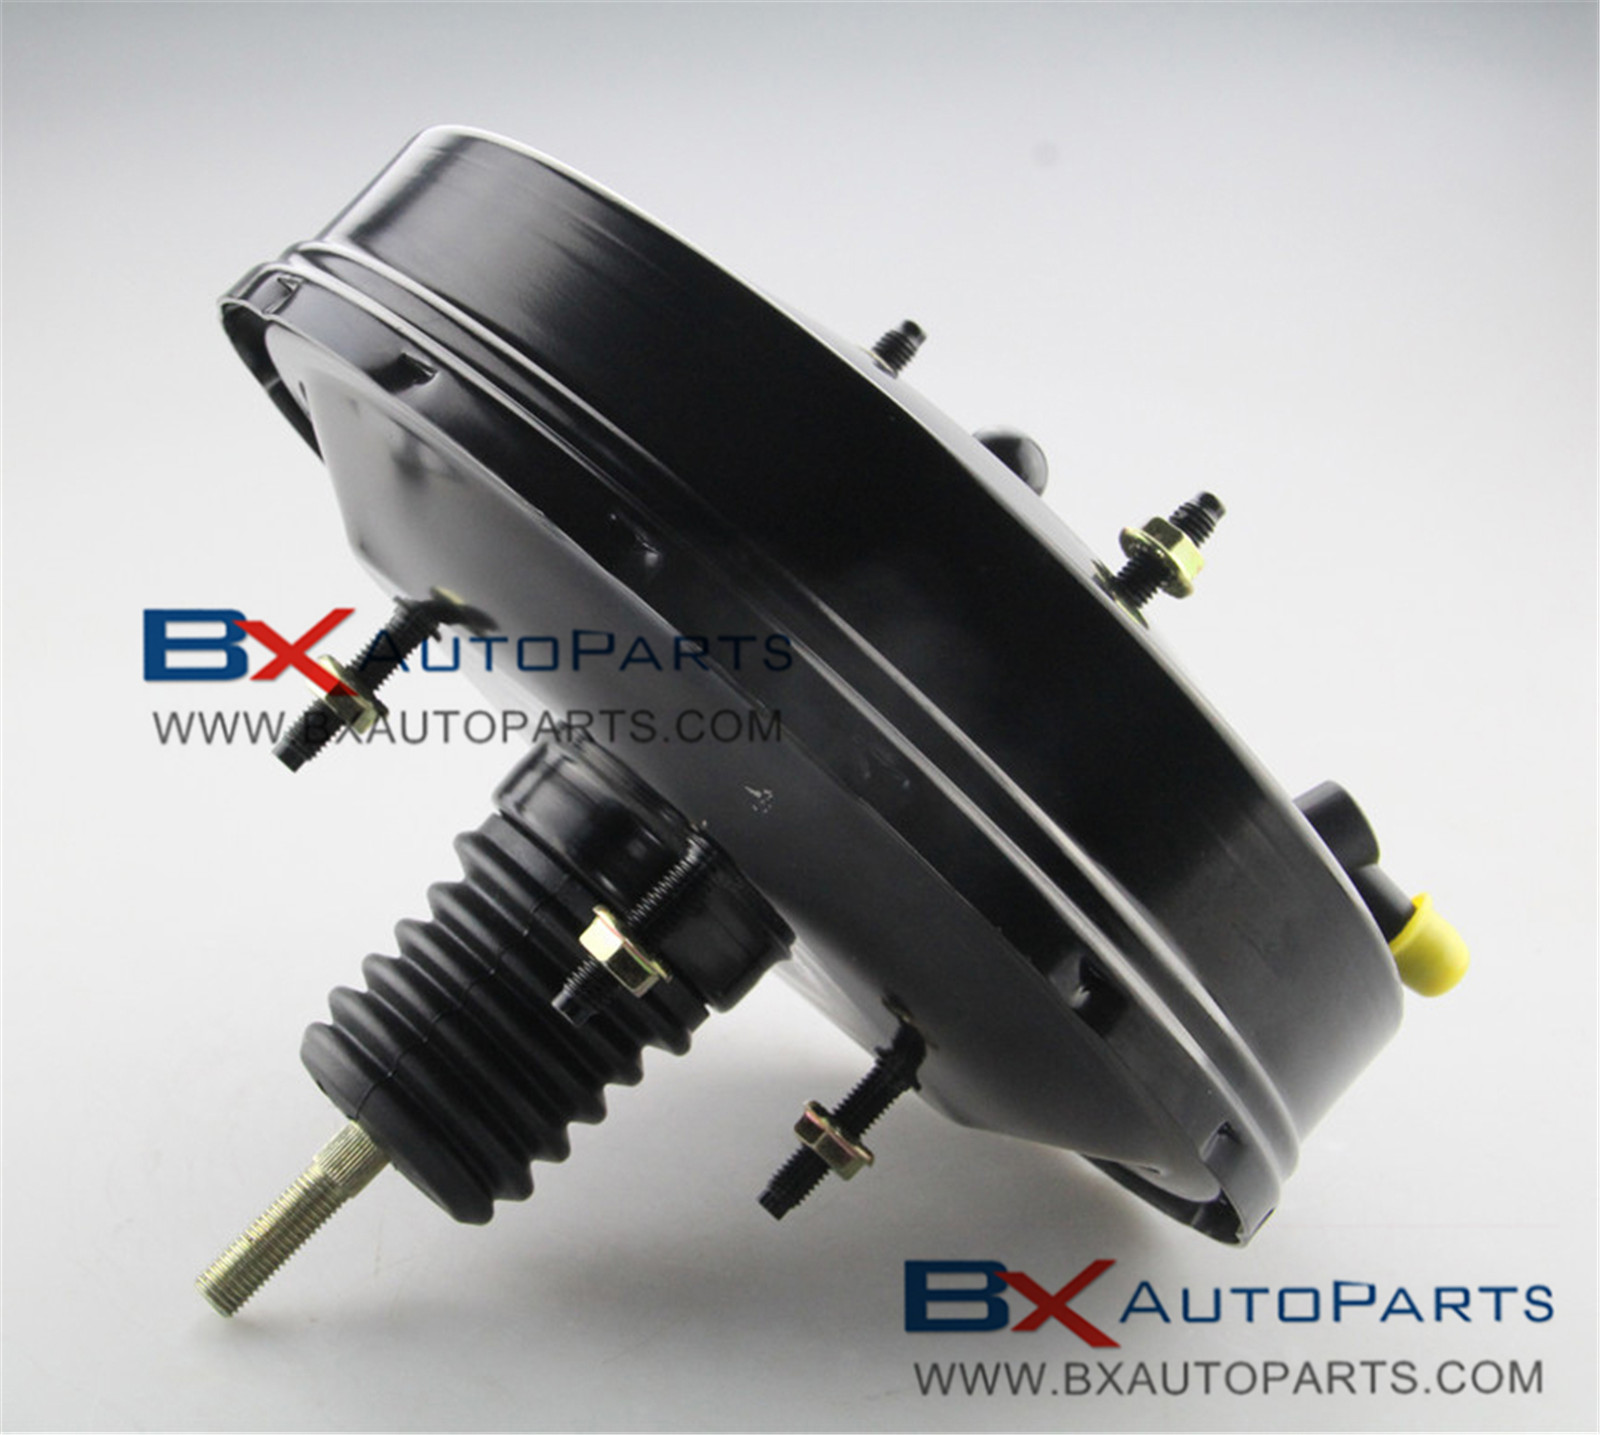 44610-1A390 Power Brake Booster For Toyota COROLLA AE110 AE111 EE110 RHD